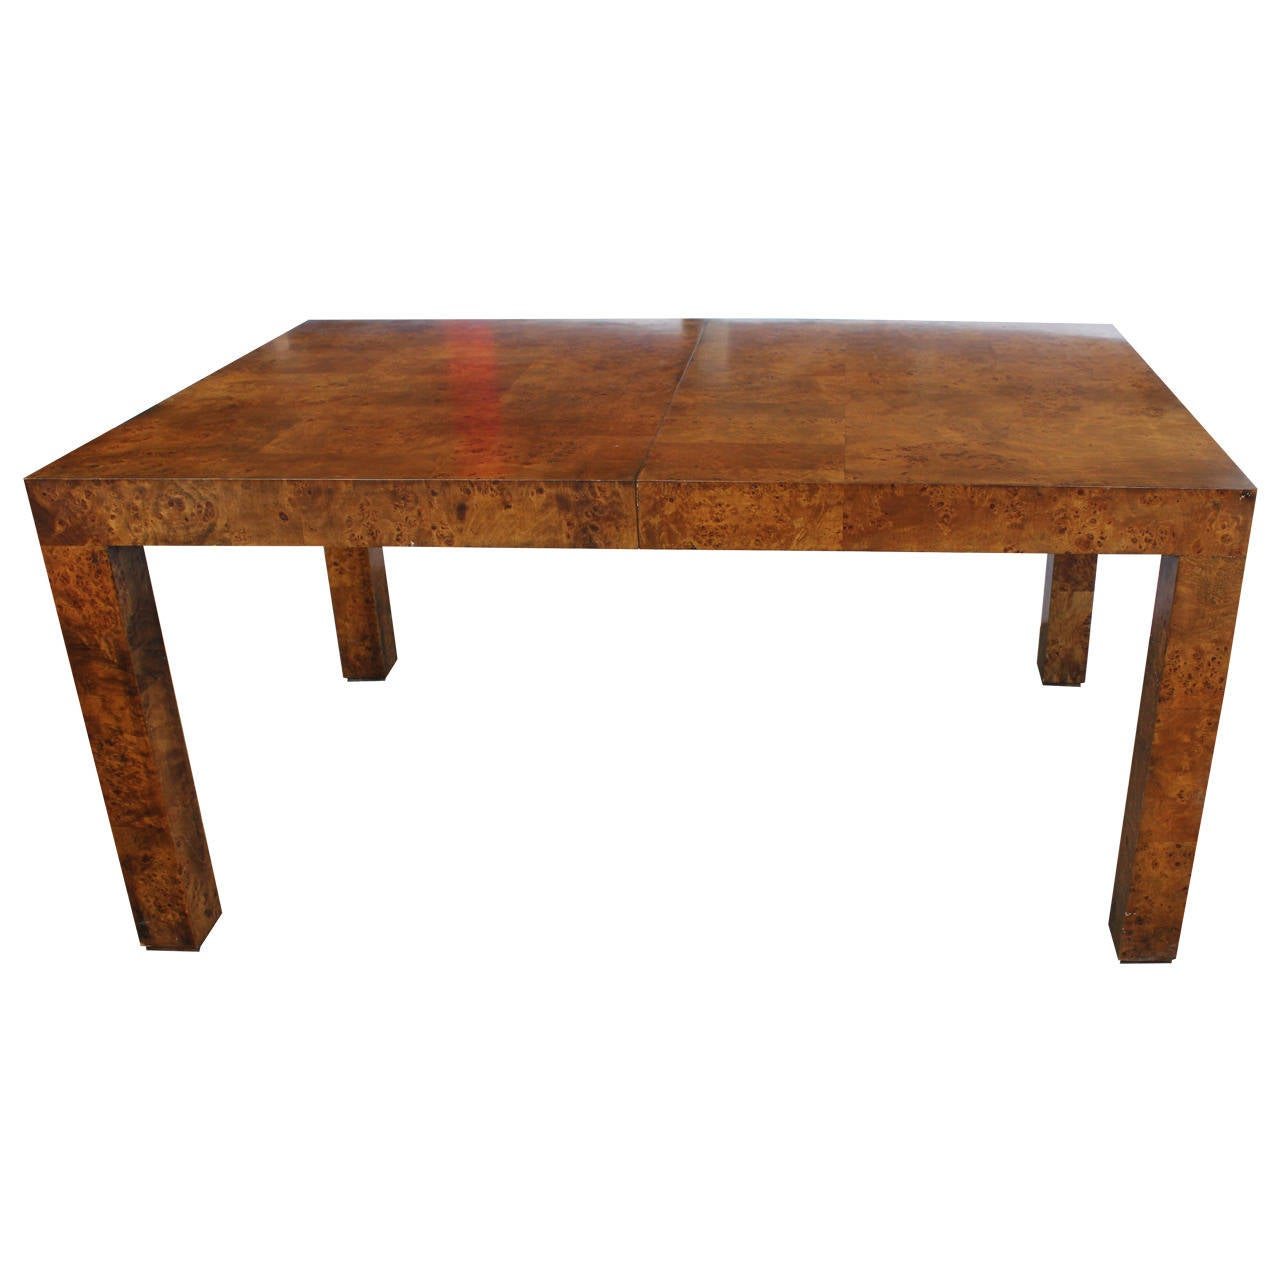 Parsons Style Burl Wood Dining Table By Milo Baughman For